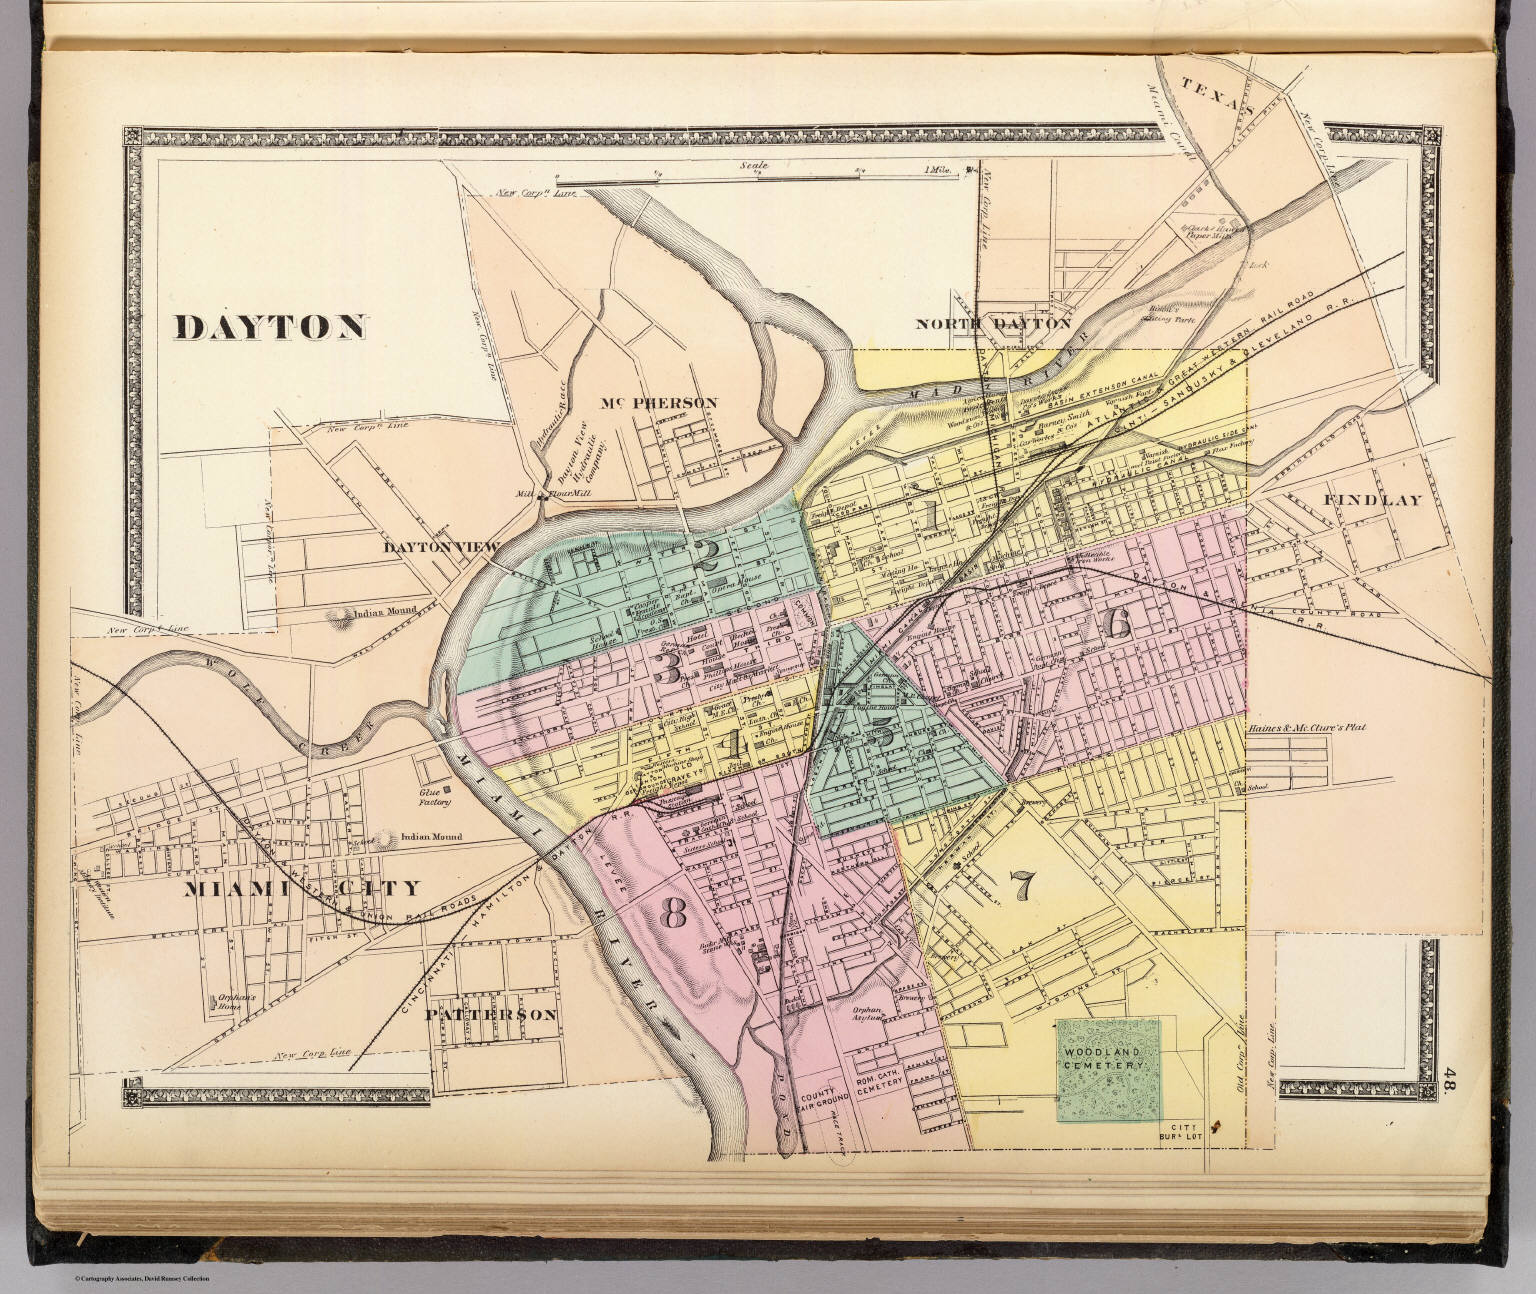 Dayton David Rumsey Historical Map Collection